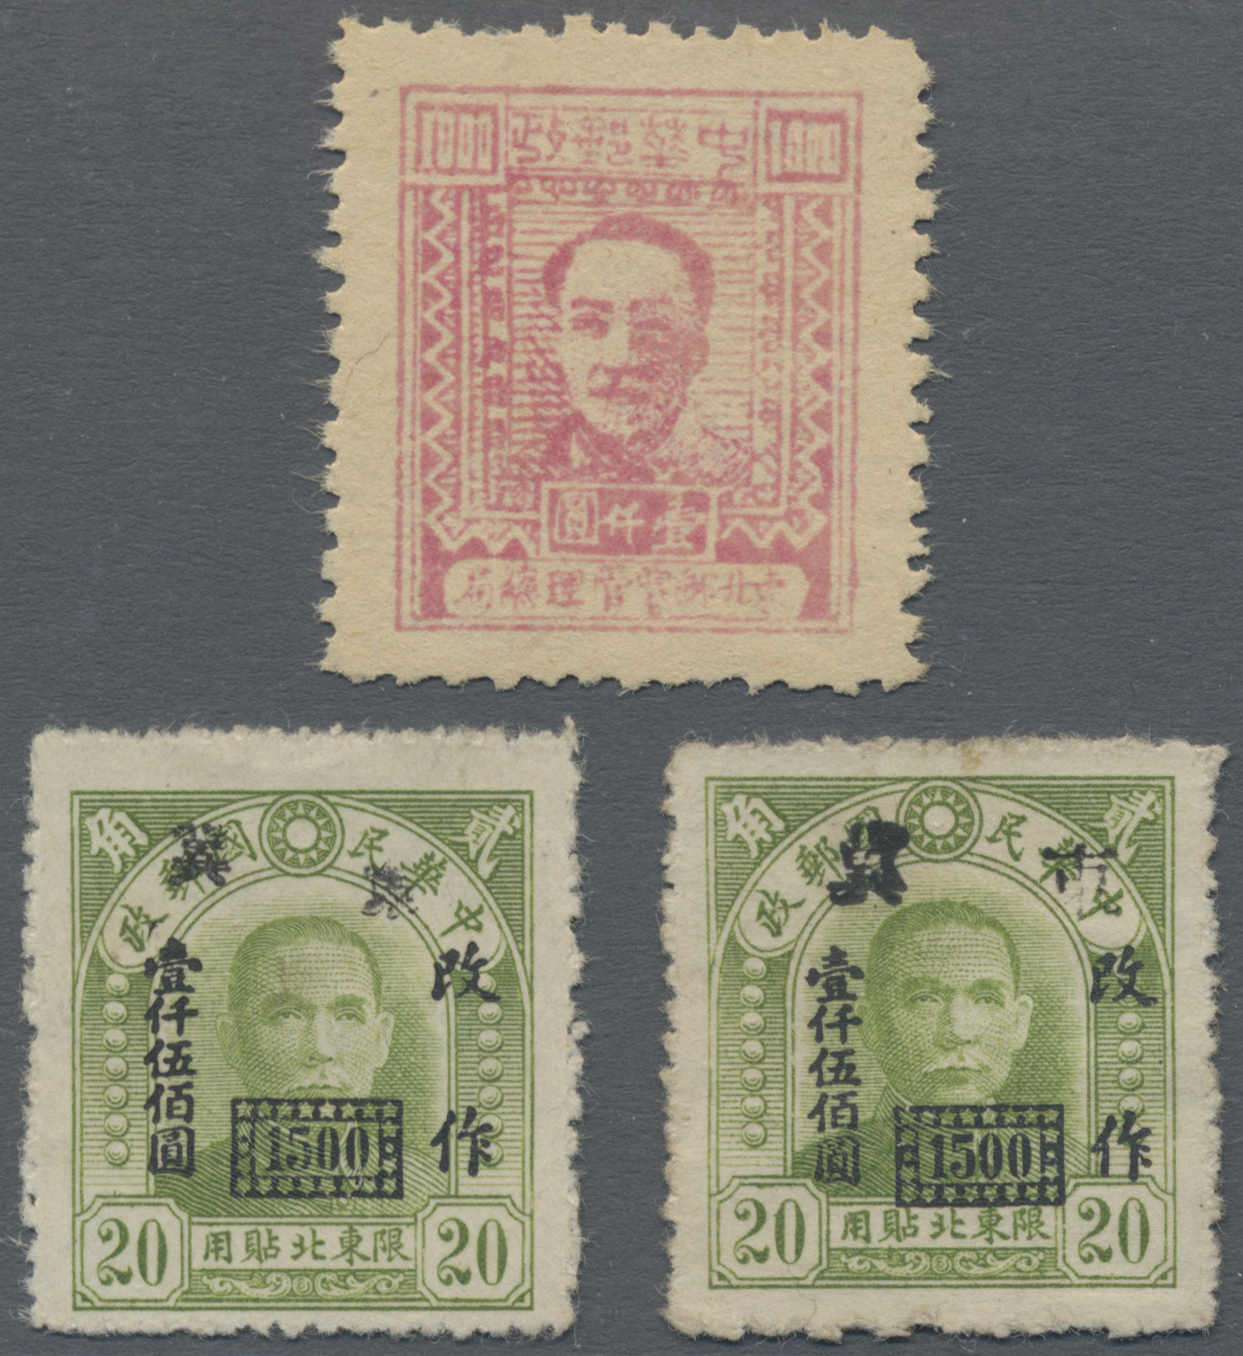 Lot 05013 - China - Volksrepublik - Provinzen  -  Auktionshaus Christoph Gärtner GmbH & Co. KG Sale #46 Special Auction China - including Liberated Areas